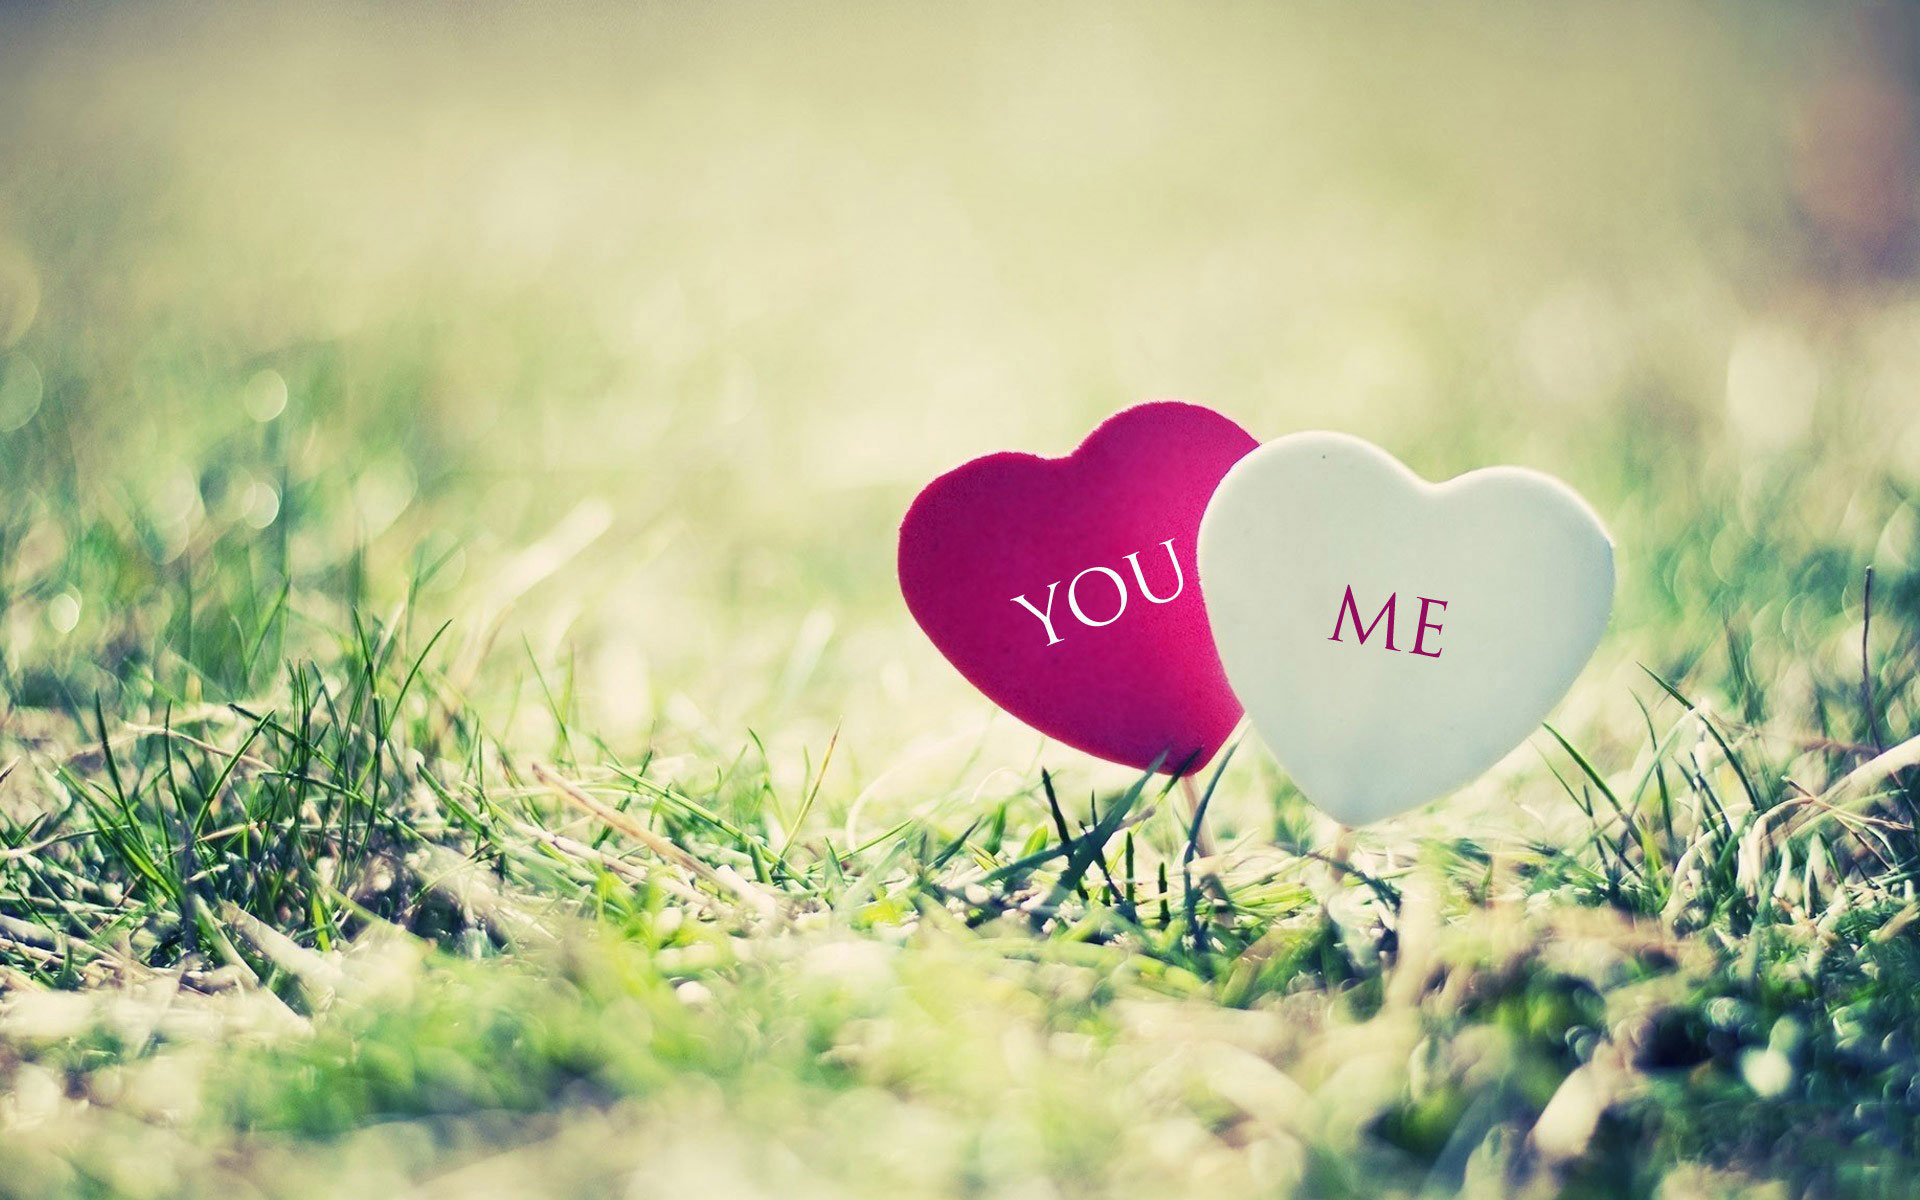 Hd wallpaper you and me - Heart Wallpaper Hd